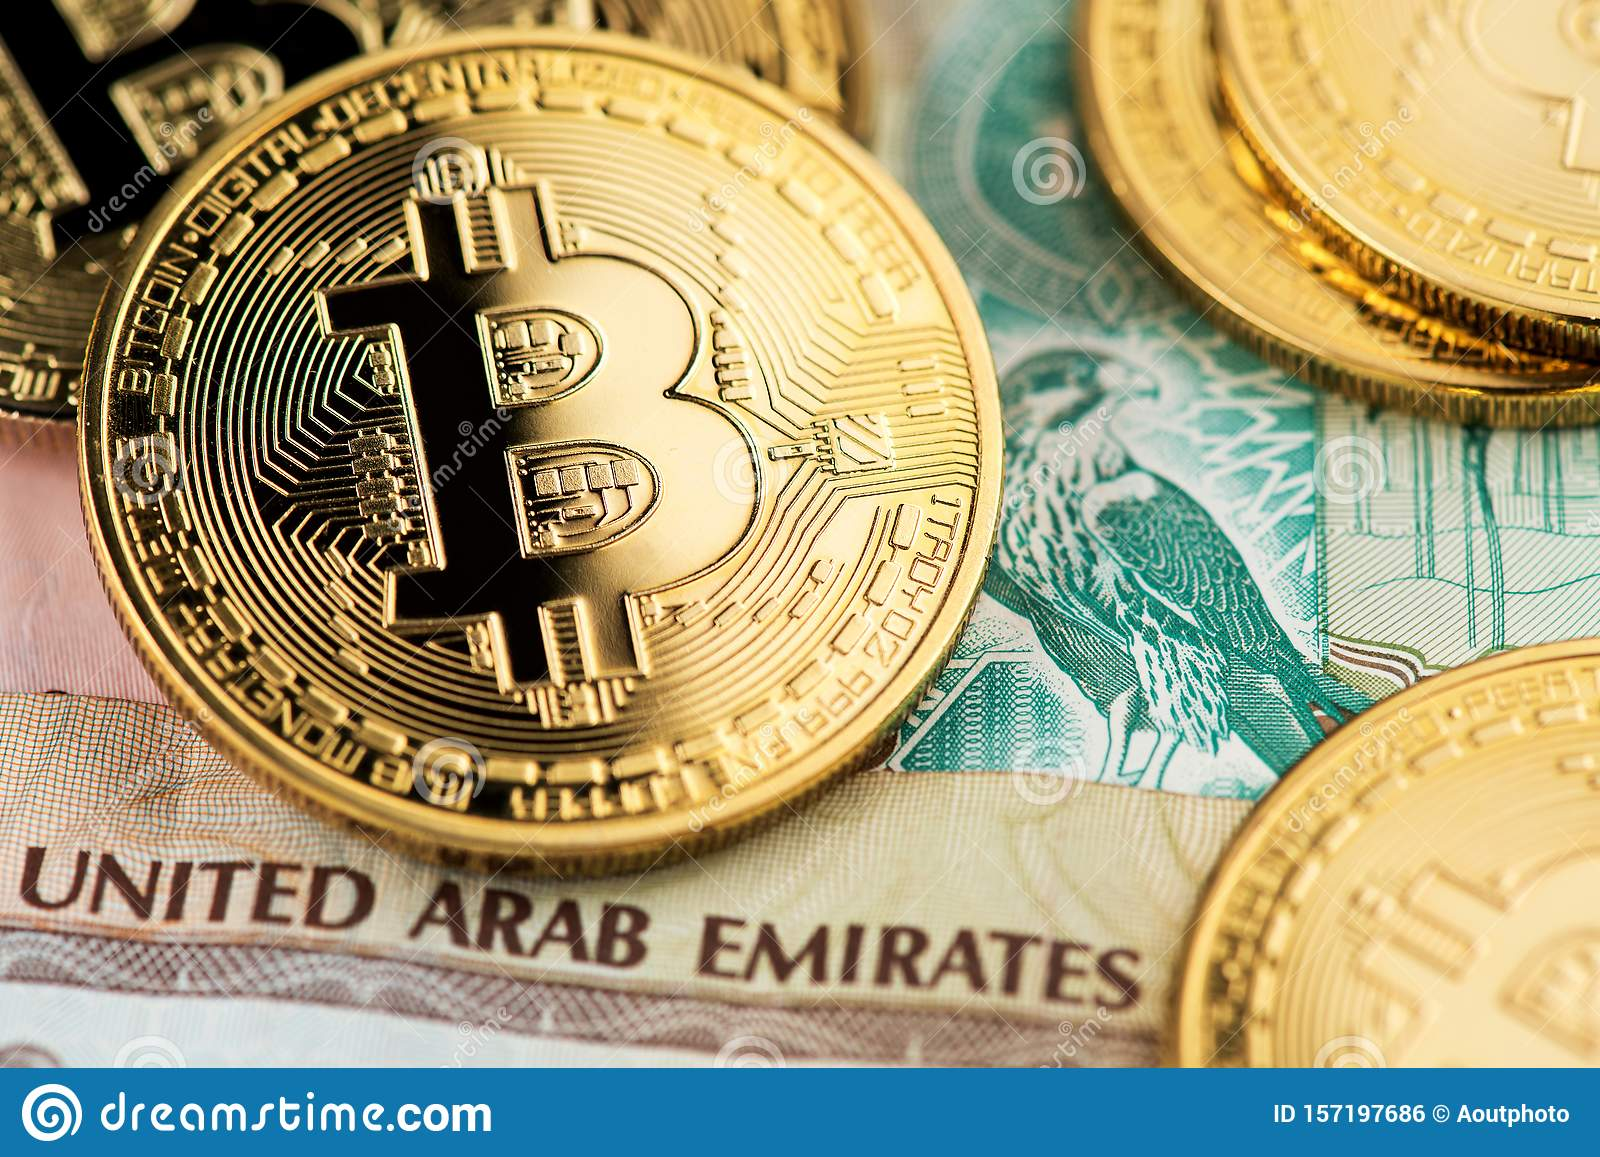 united arab coin cryptocurrency